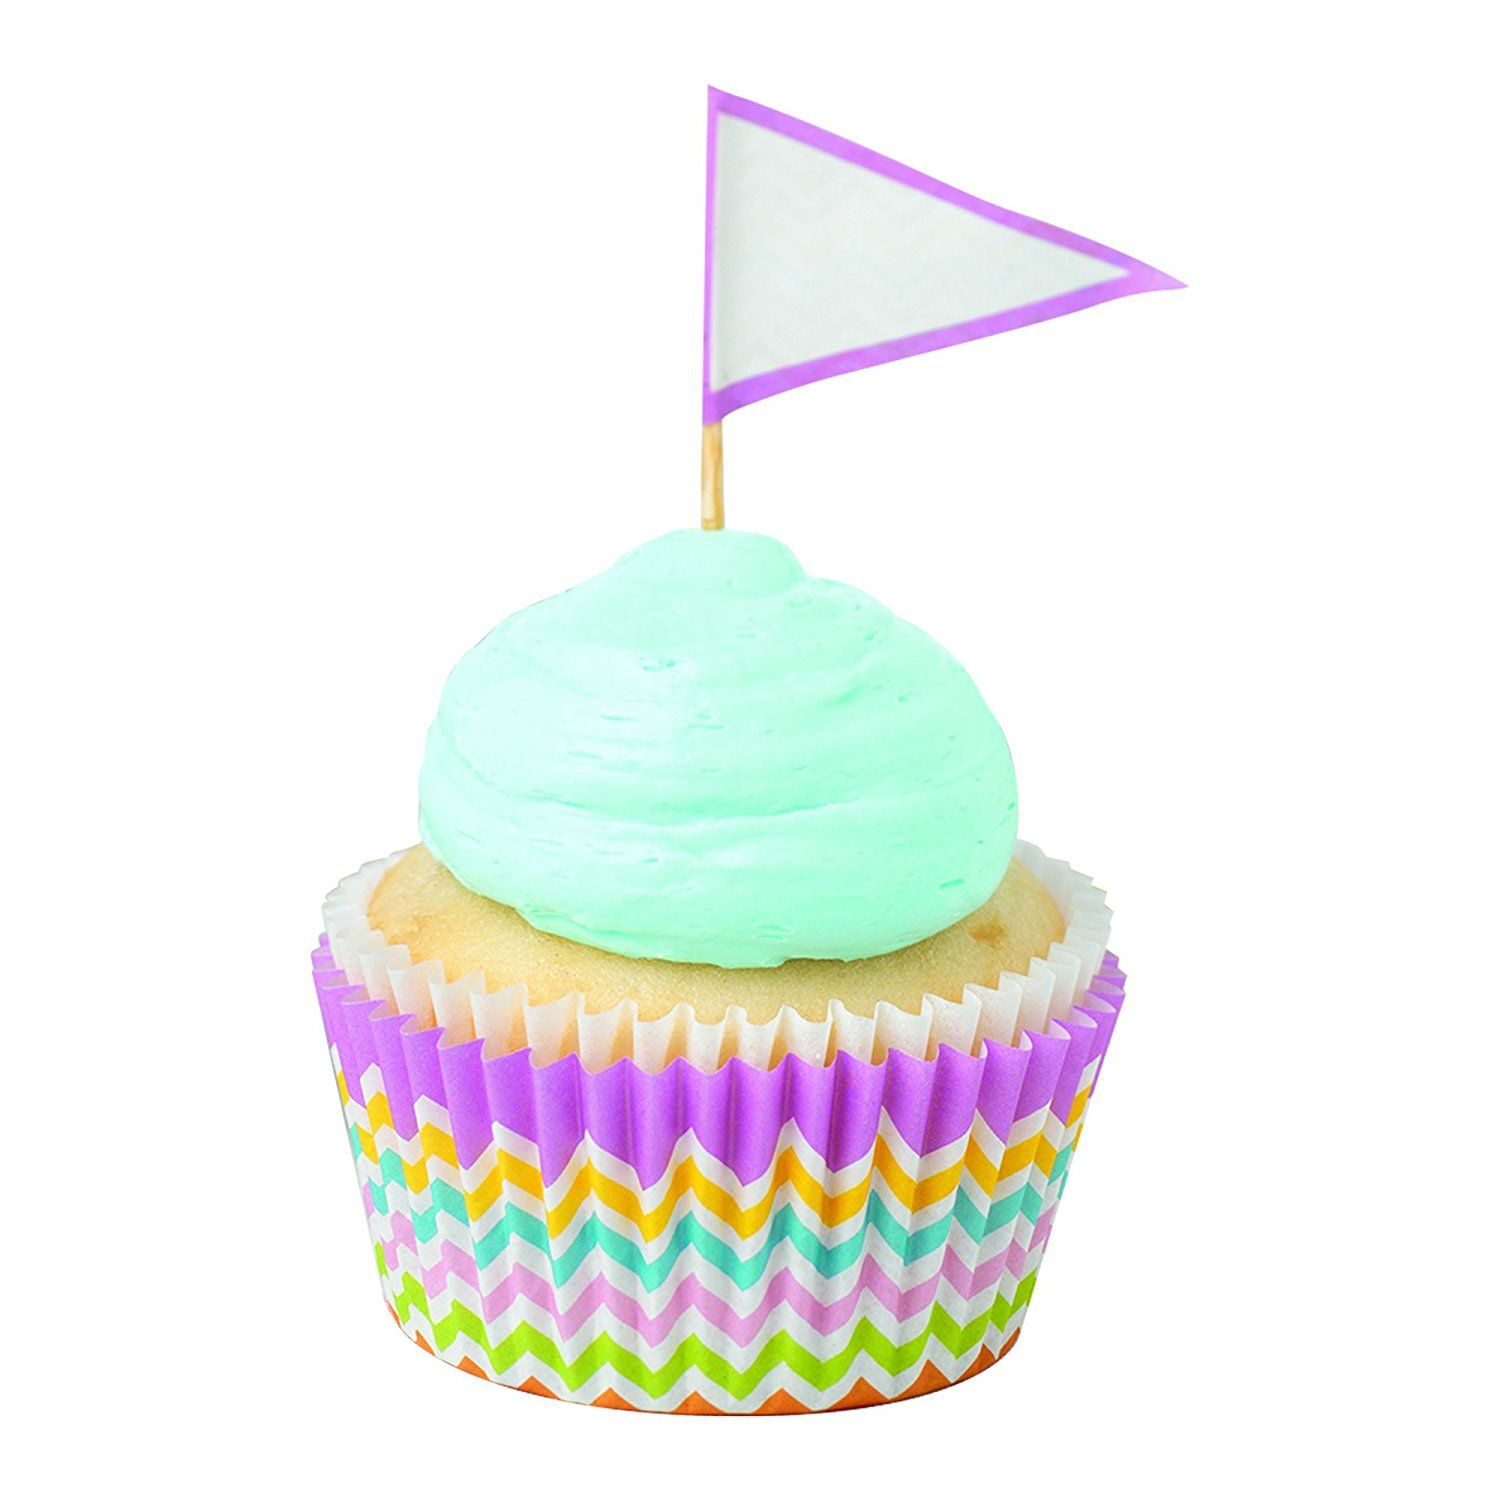 Sweet Creations 24 Count Easter Baking Cup Cupcake Papers